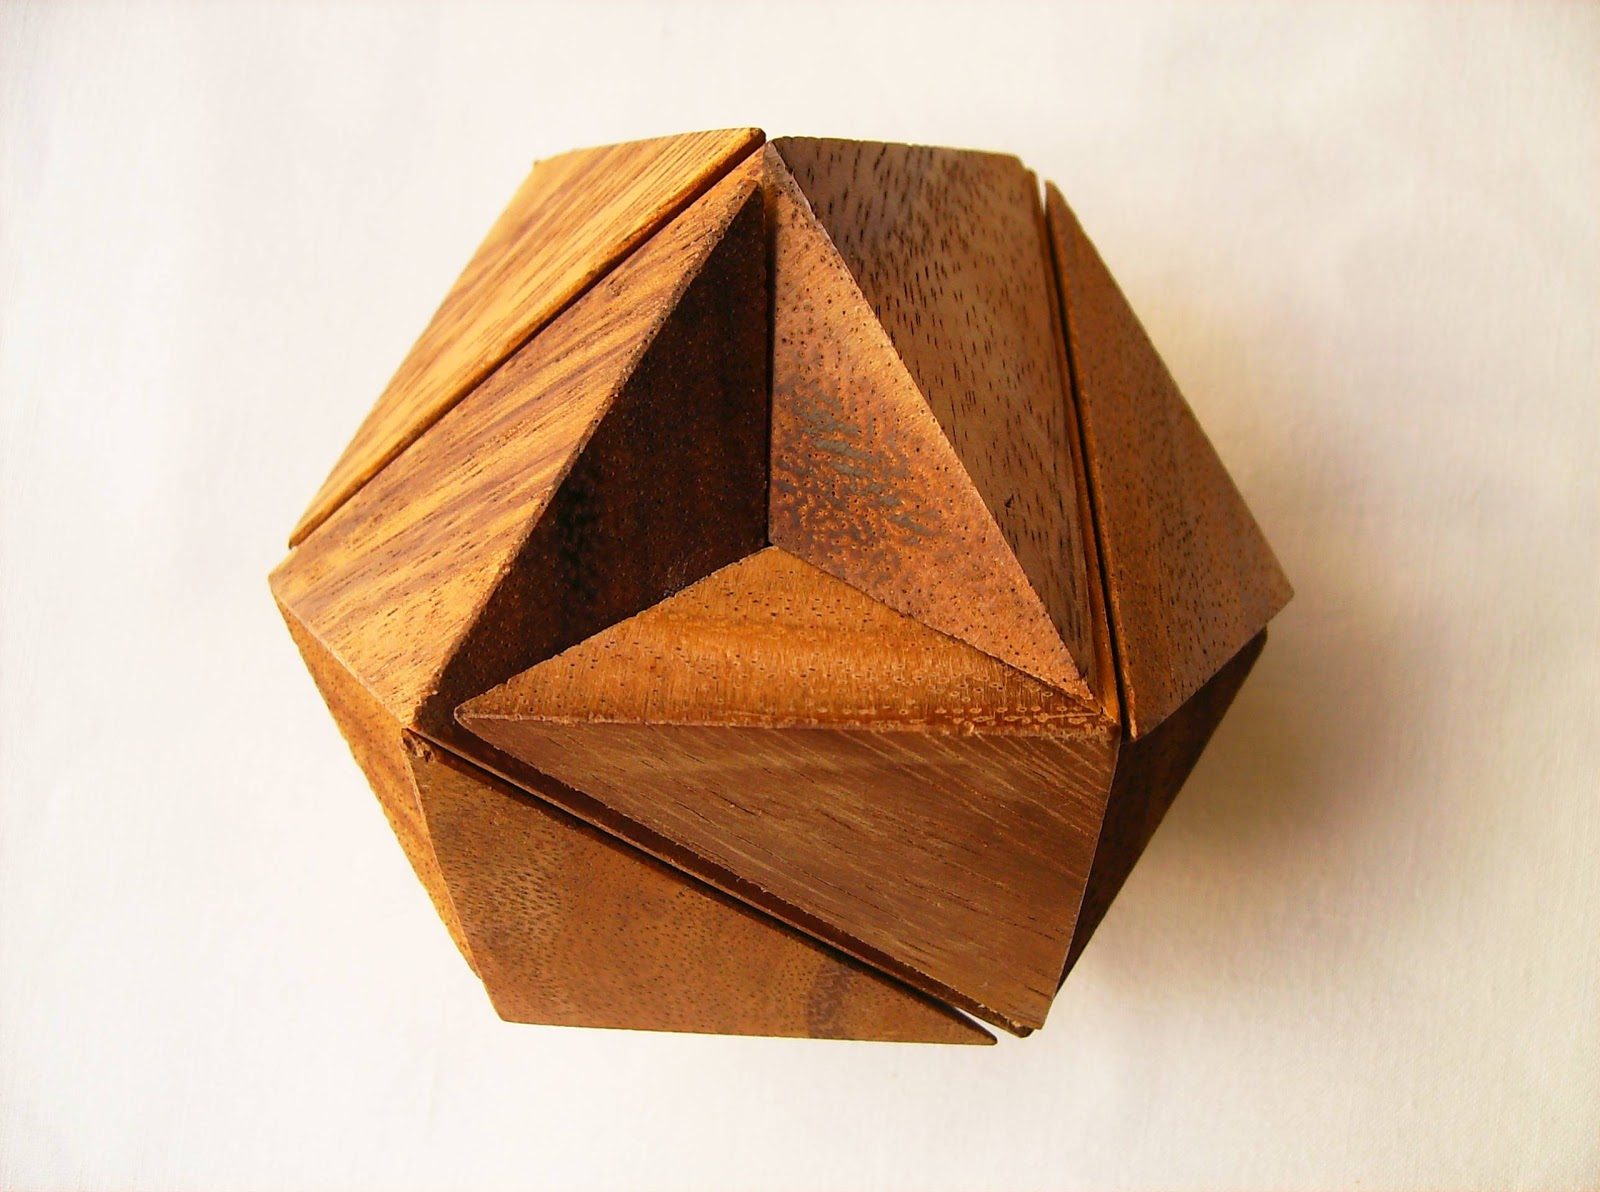 Hexagon Objects